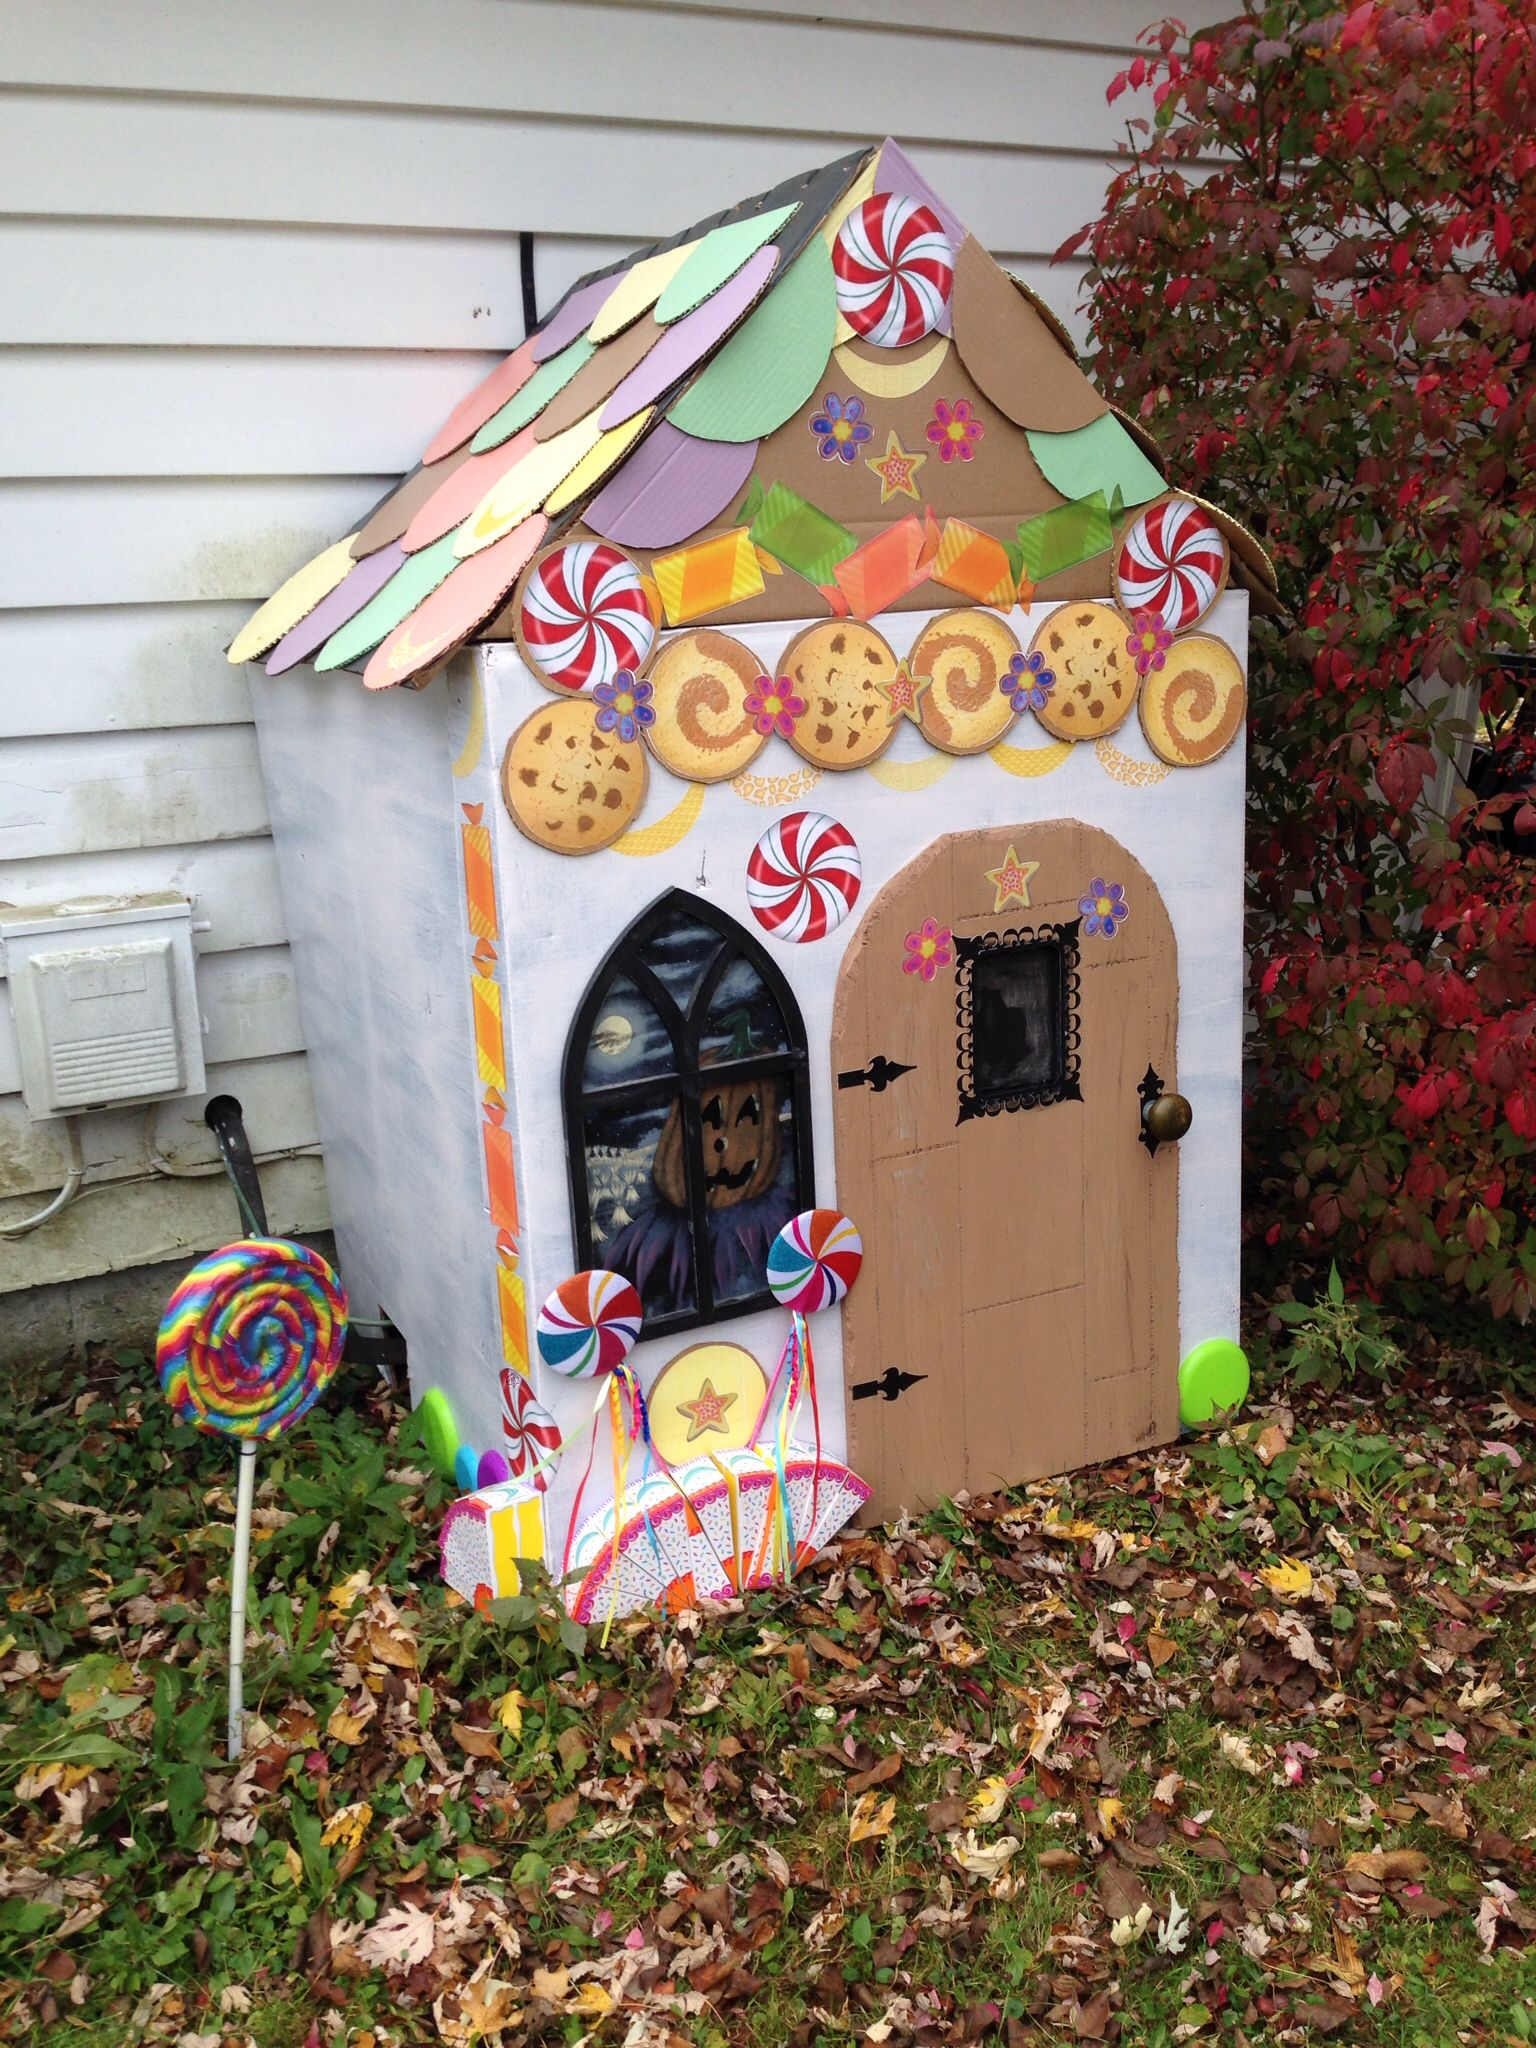 Finished Hansel And Gretel Candy House In Place 10 27 13 Hansel And Gretel House Candy House Halloween Themes